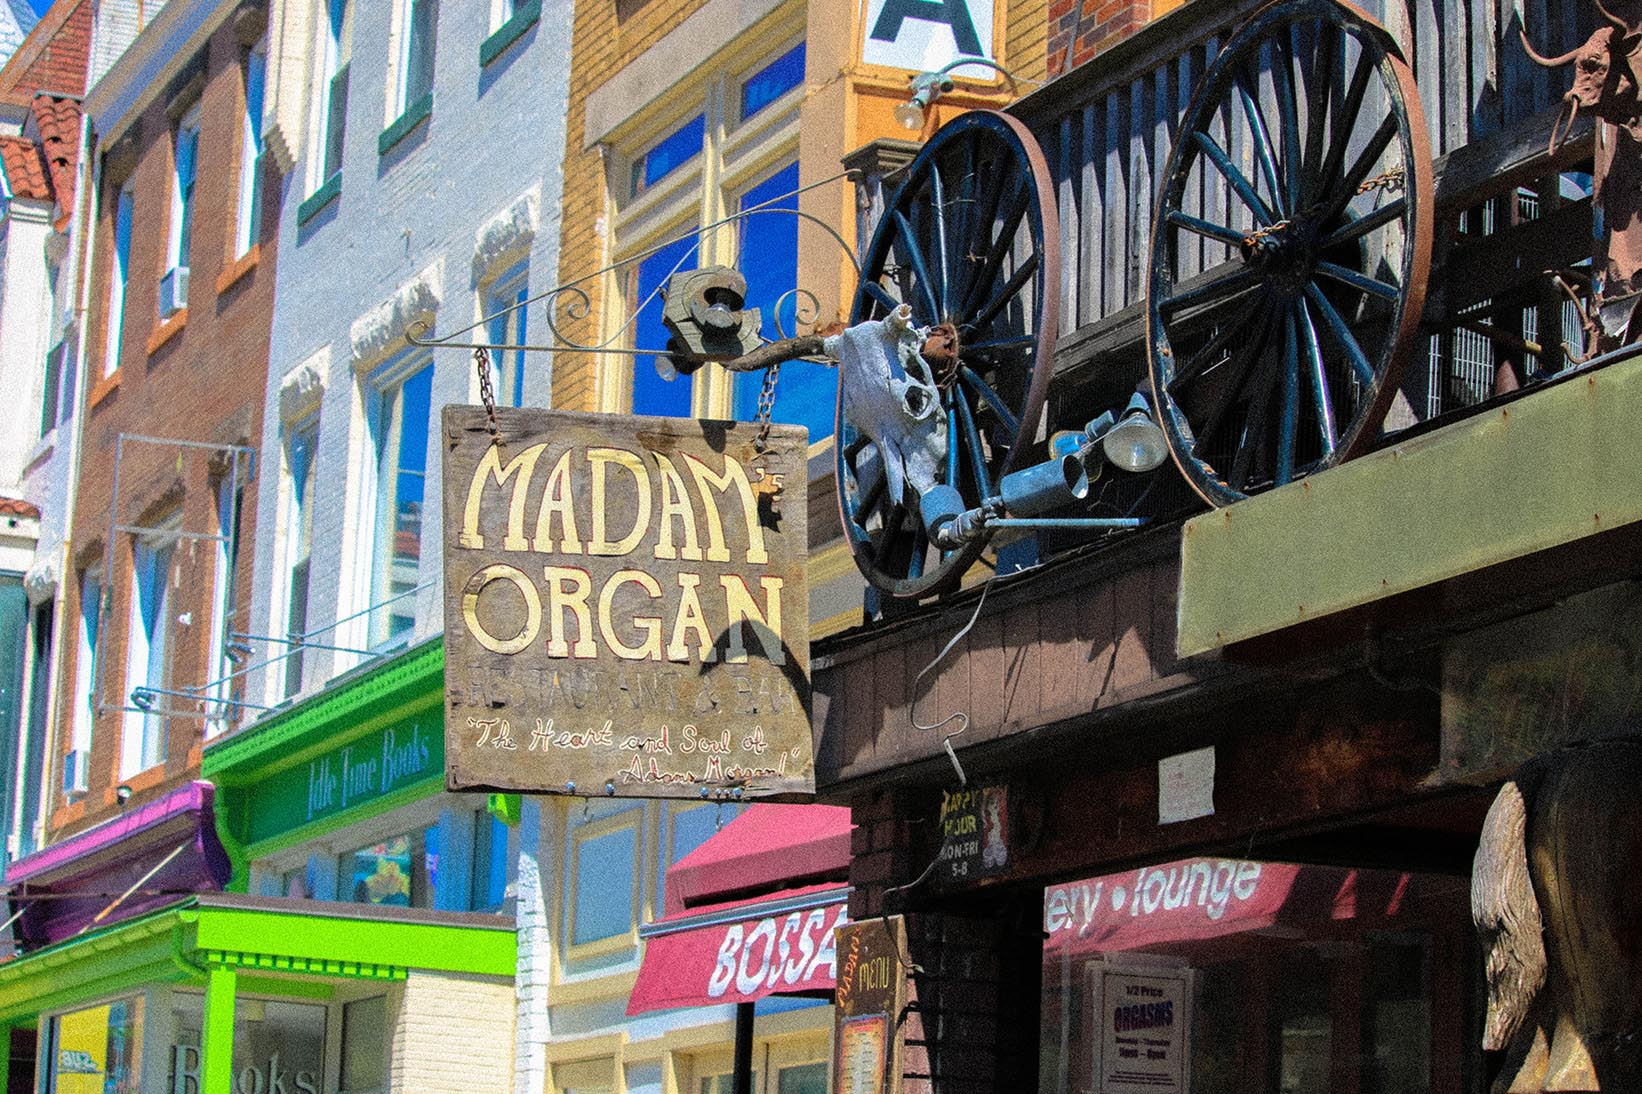 Madams Organ in Adams Morgan, Washington, DC